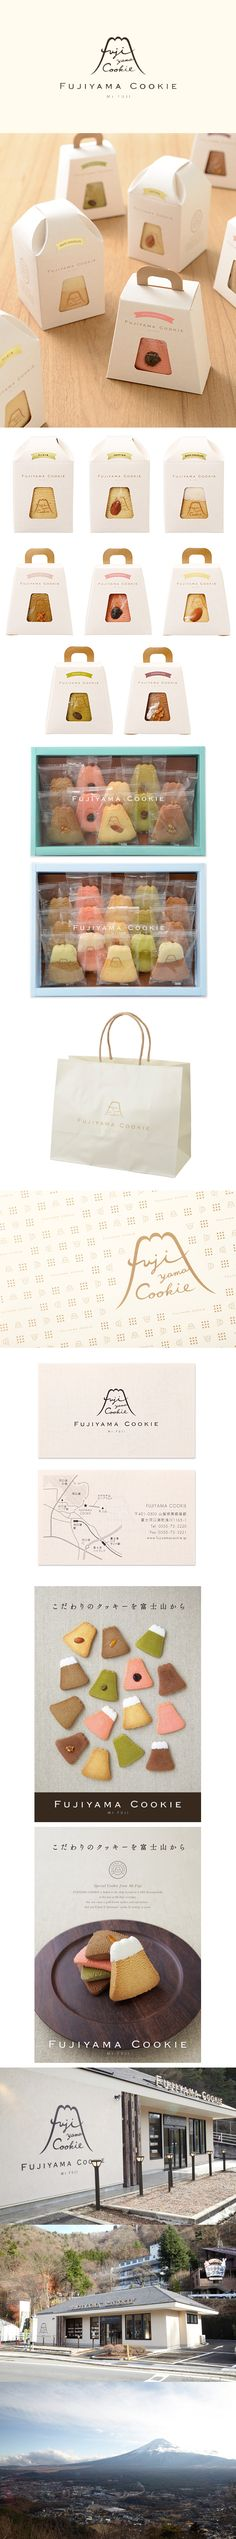 FUJIYAMA COOKIE / logo / package / shop card / poster / sign / FROM GRAPHIC